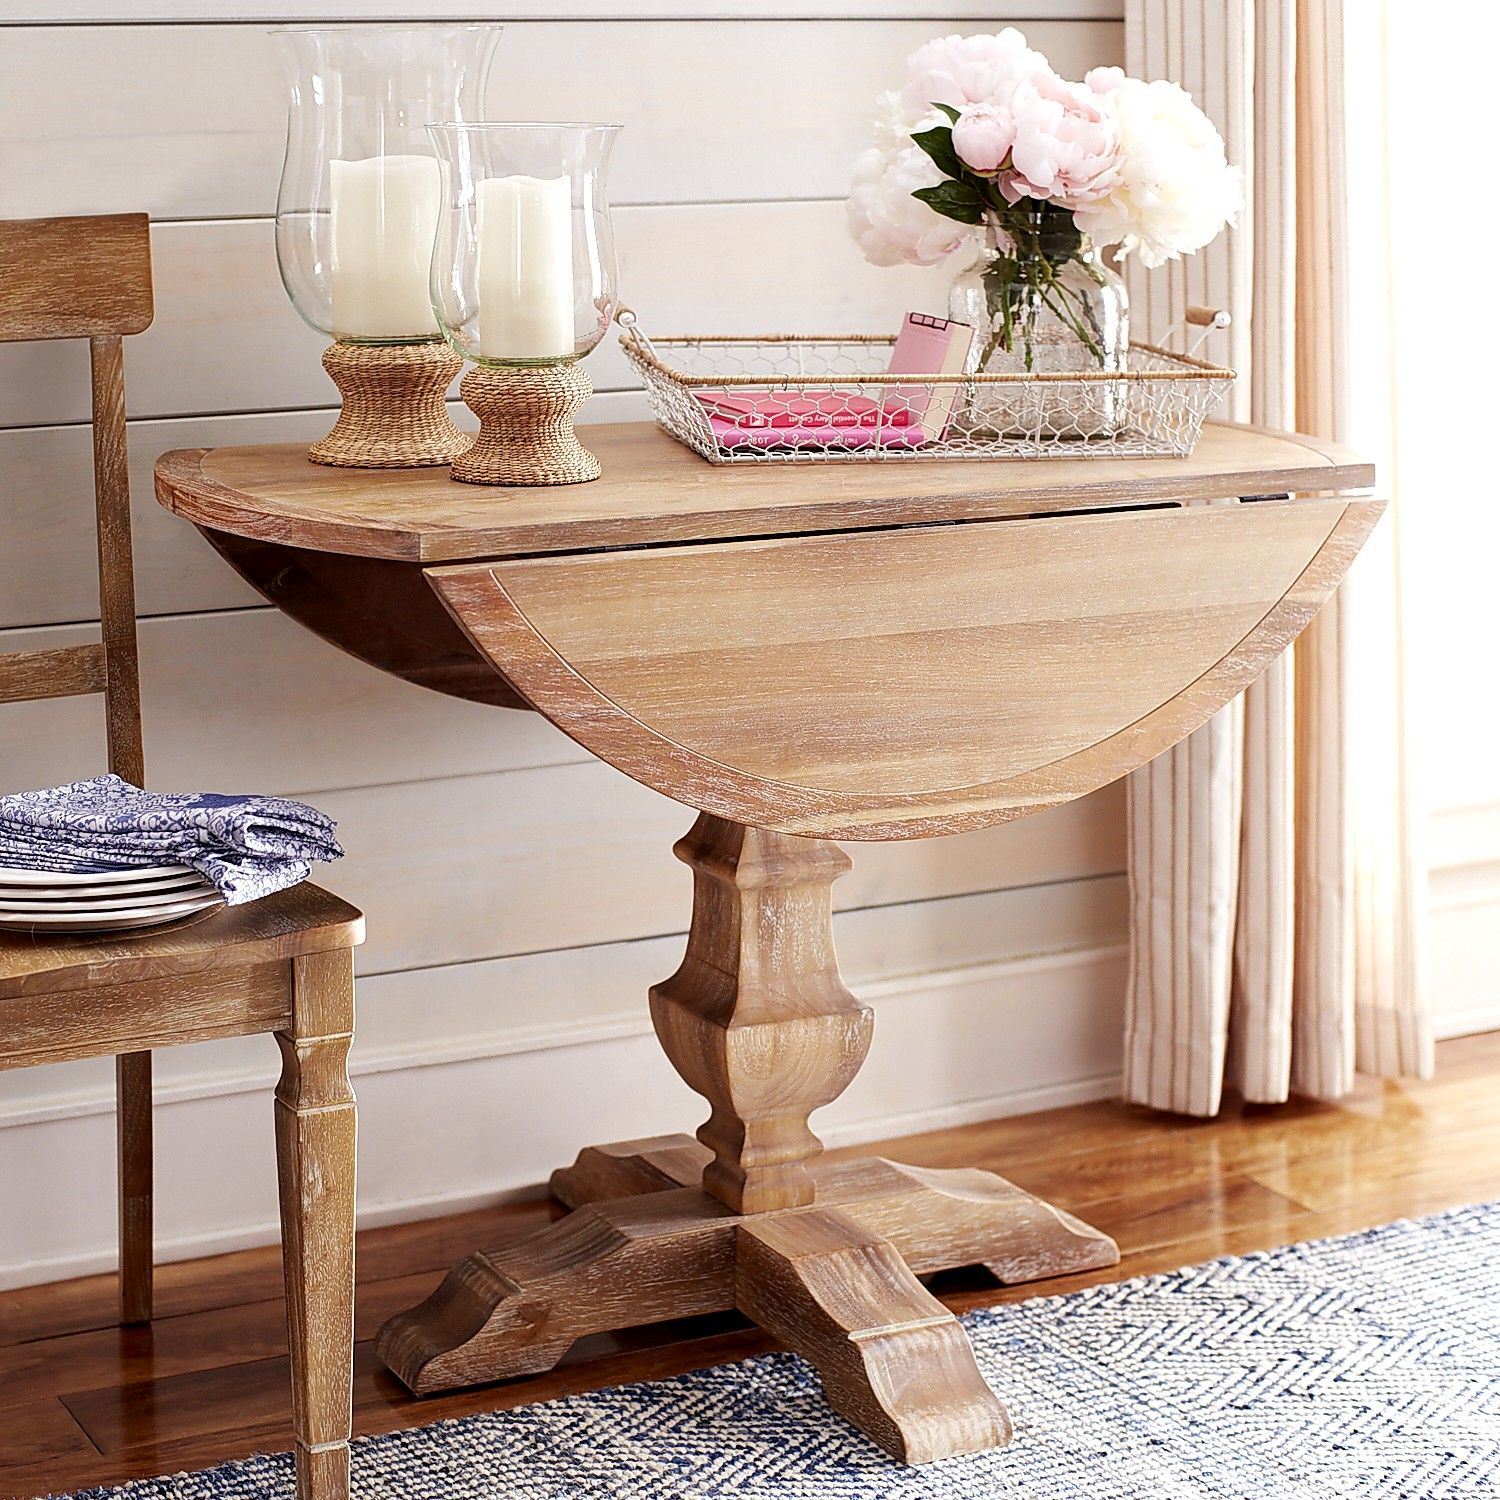 15 Small Dining Room Table Ideas Tips: Bradding Natural Stonewash Round Drop Leaf Dining Table